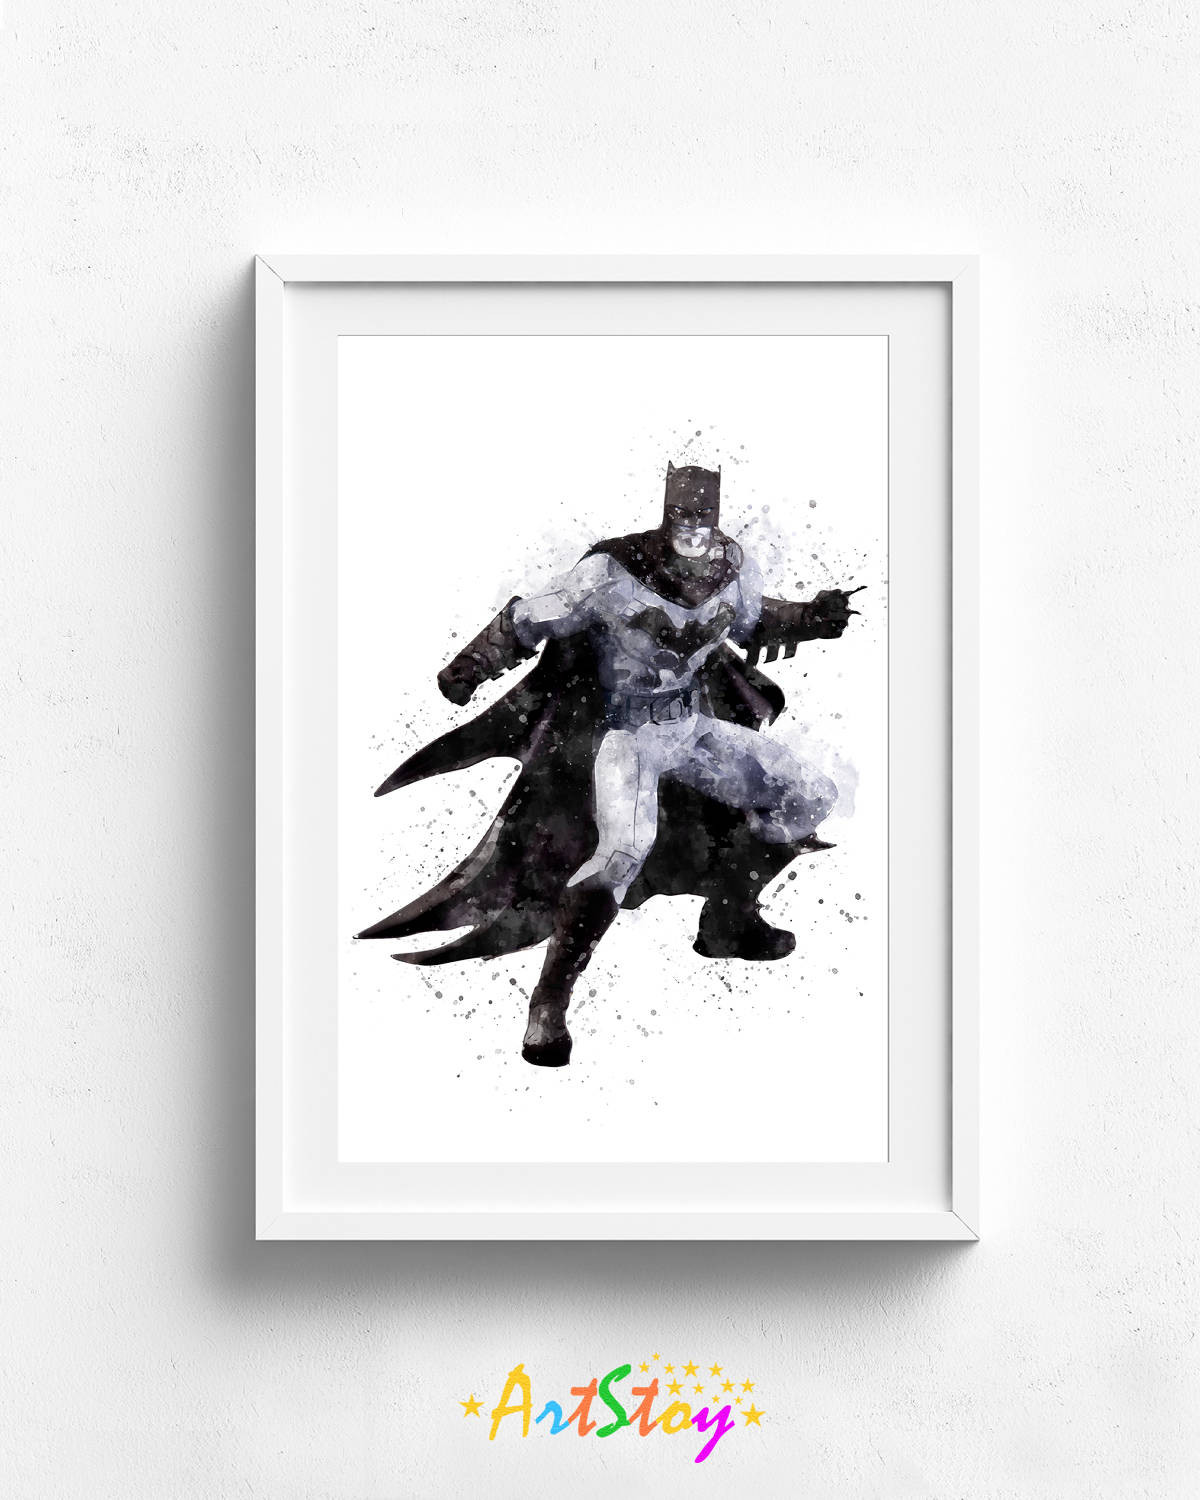 Best ideas about Batman Wall Art . Save or Pin Batman watercolor superhero wall art batman wall decor Now.